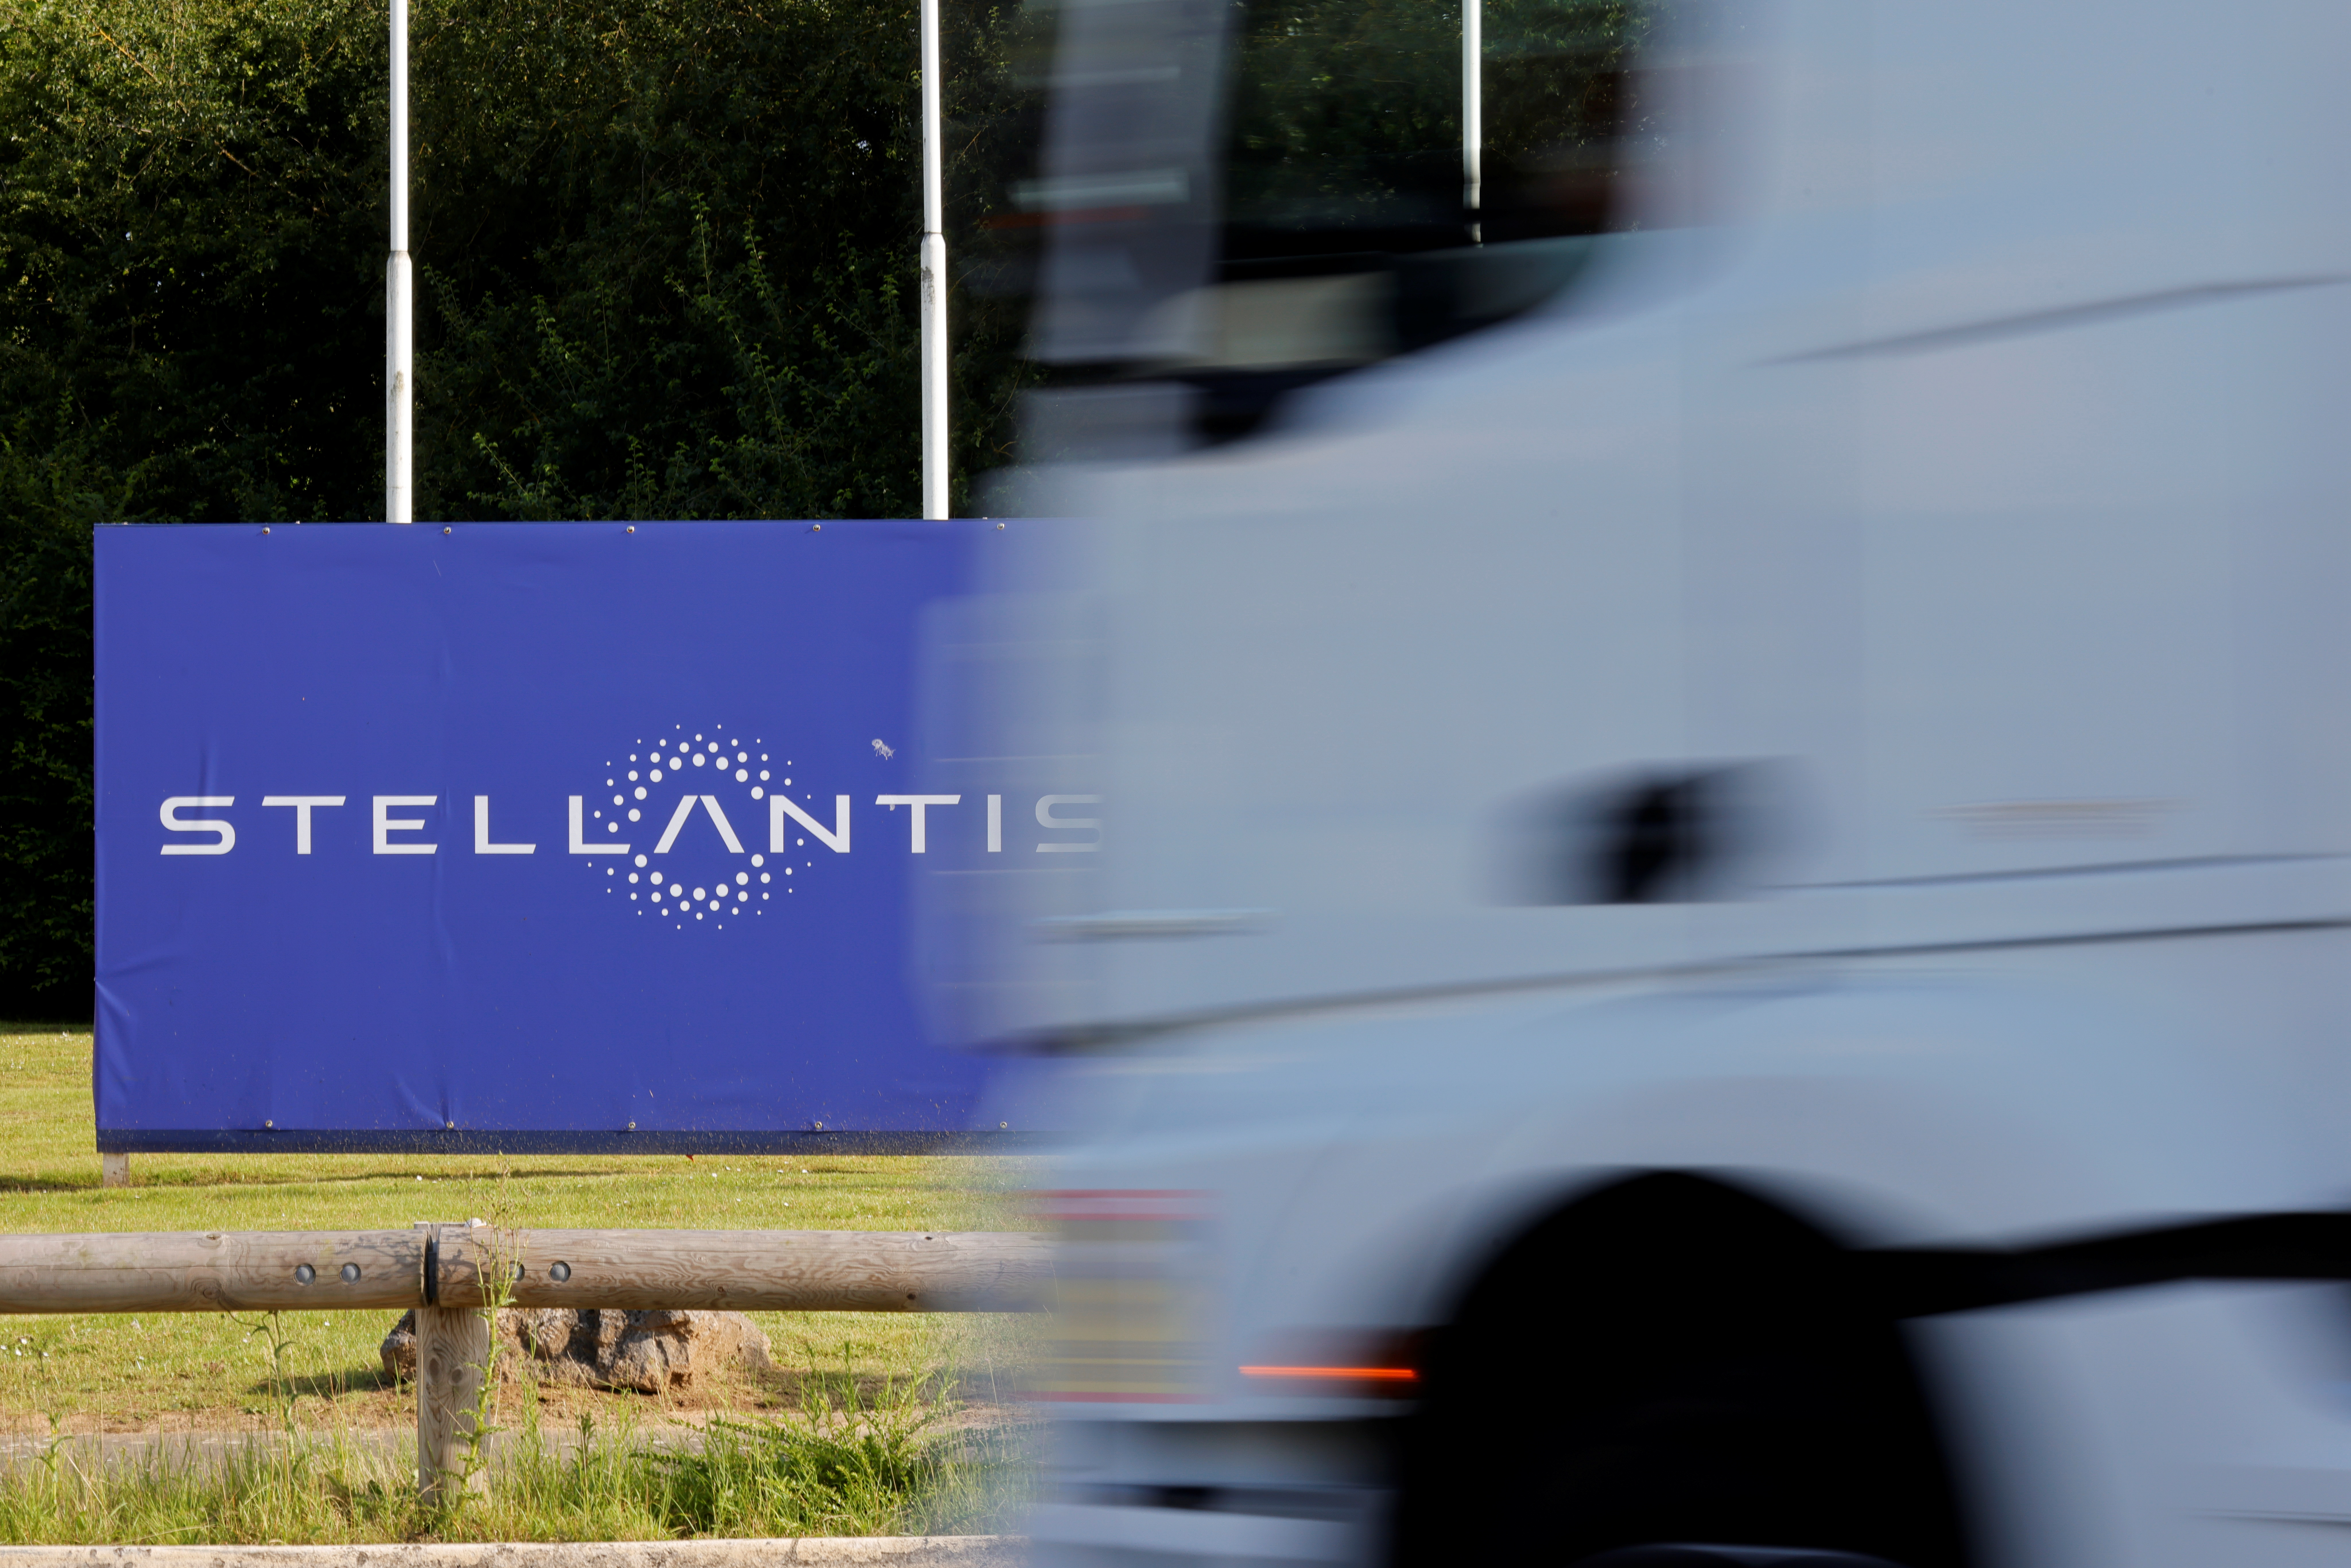 A view shows the logo of Stellantis at the entrance of the company's factory in Hordain, France, July 7, 2021. REUTERS/Pascal Rossignol/Files